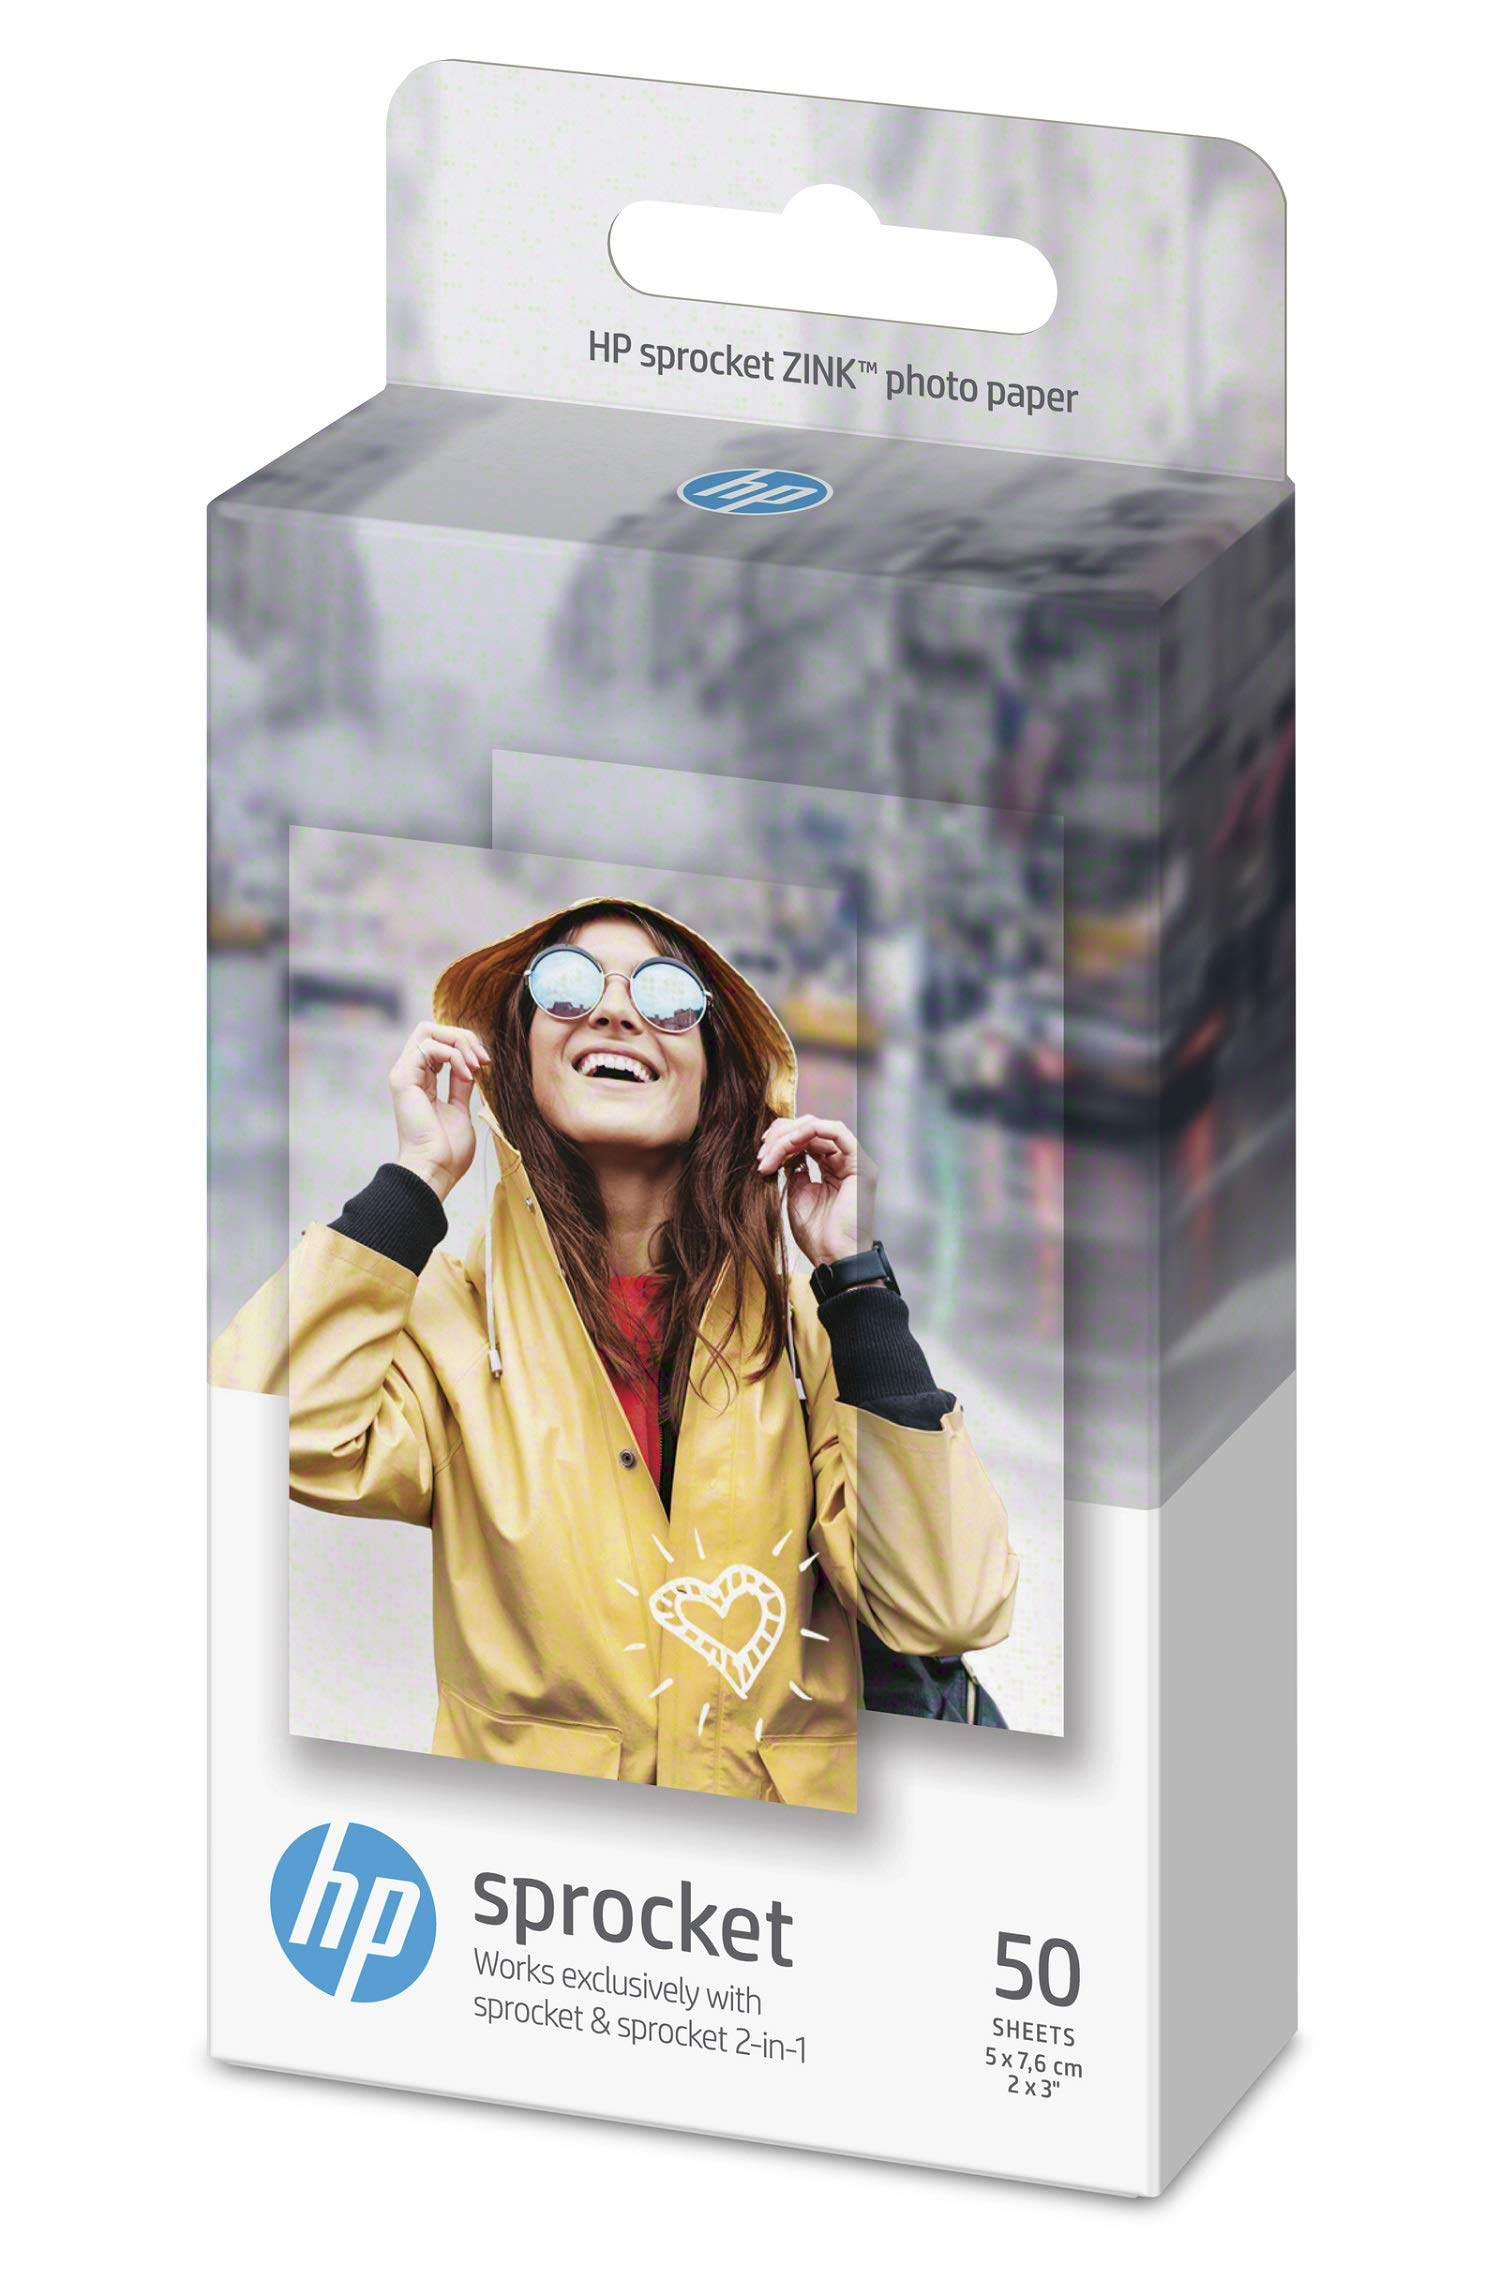 HP 1DE37A 5 x 7.6 cm/2 x 3 Inch Sprocket Photo Paper Sticky-Backed, 290 GSM, 50 Sheets